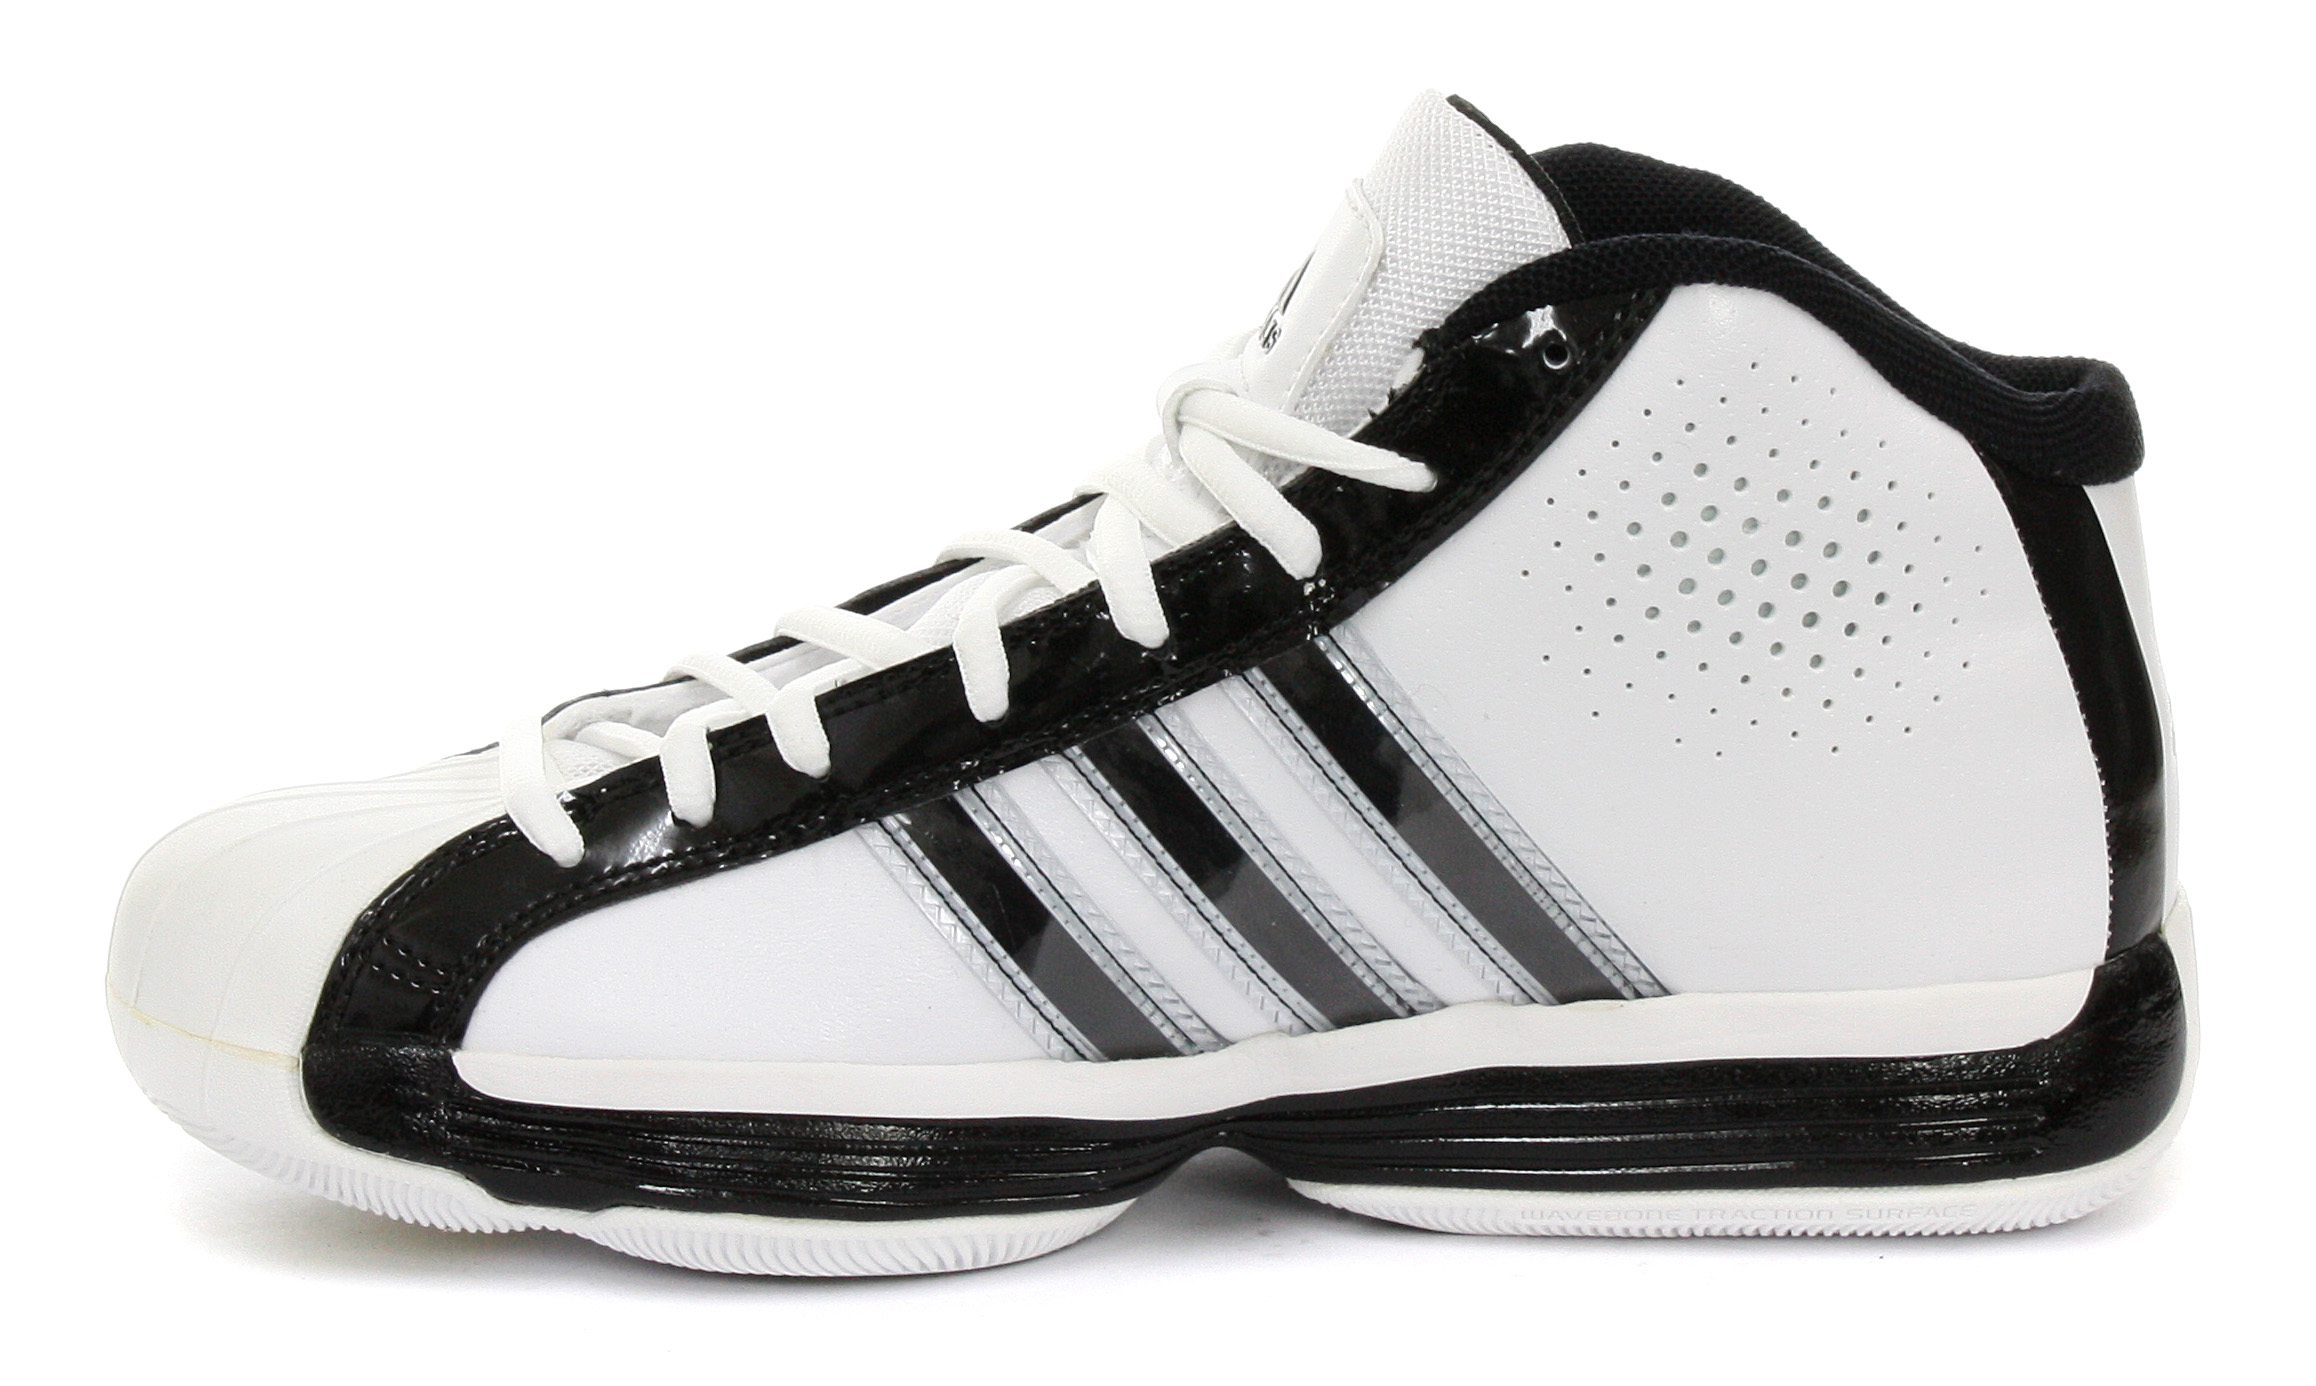 Buy Gt Adidas Basketball Shoes 28 Images Nike Or Adidas Basketball Shoes 28 Images Buy Nike